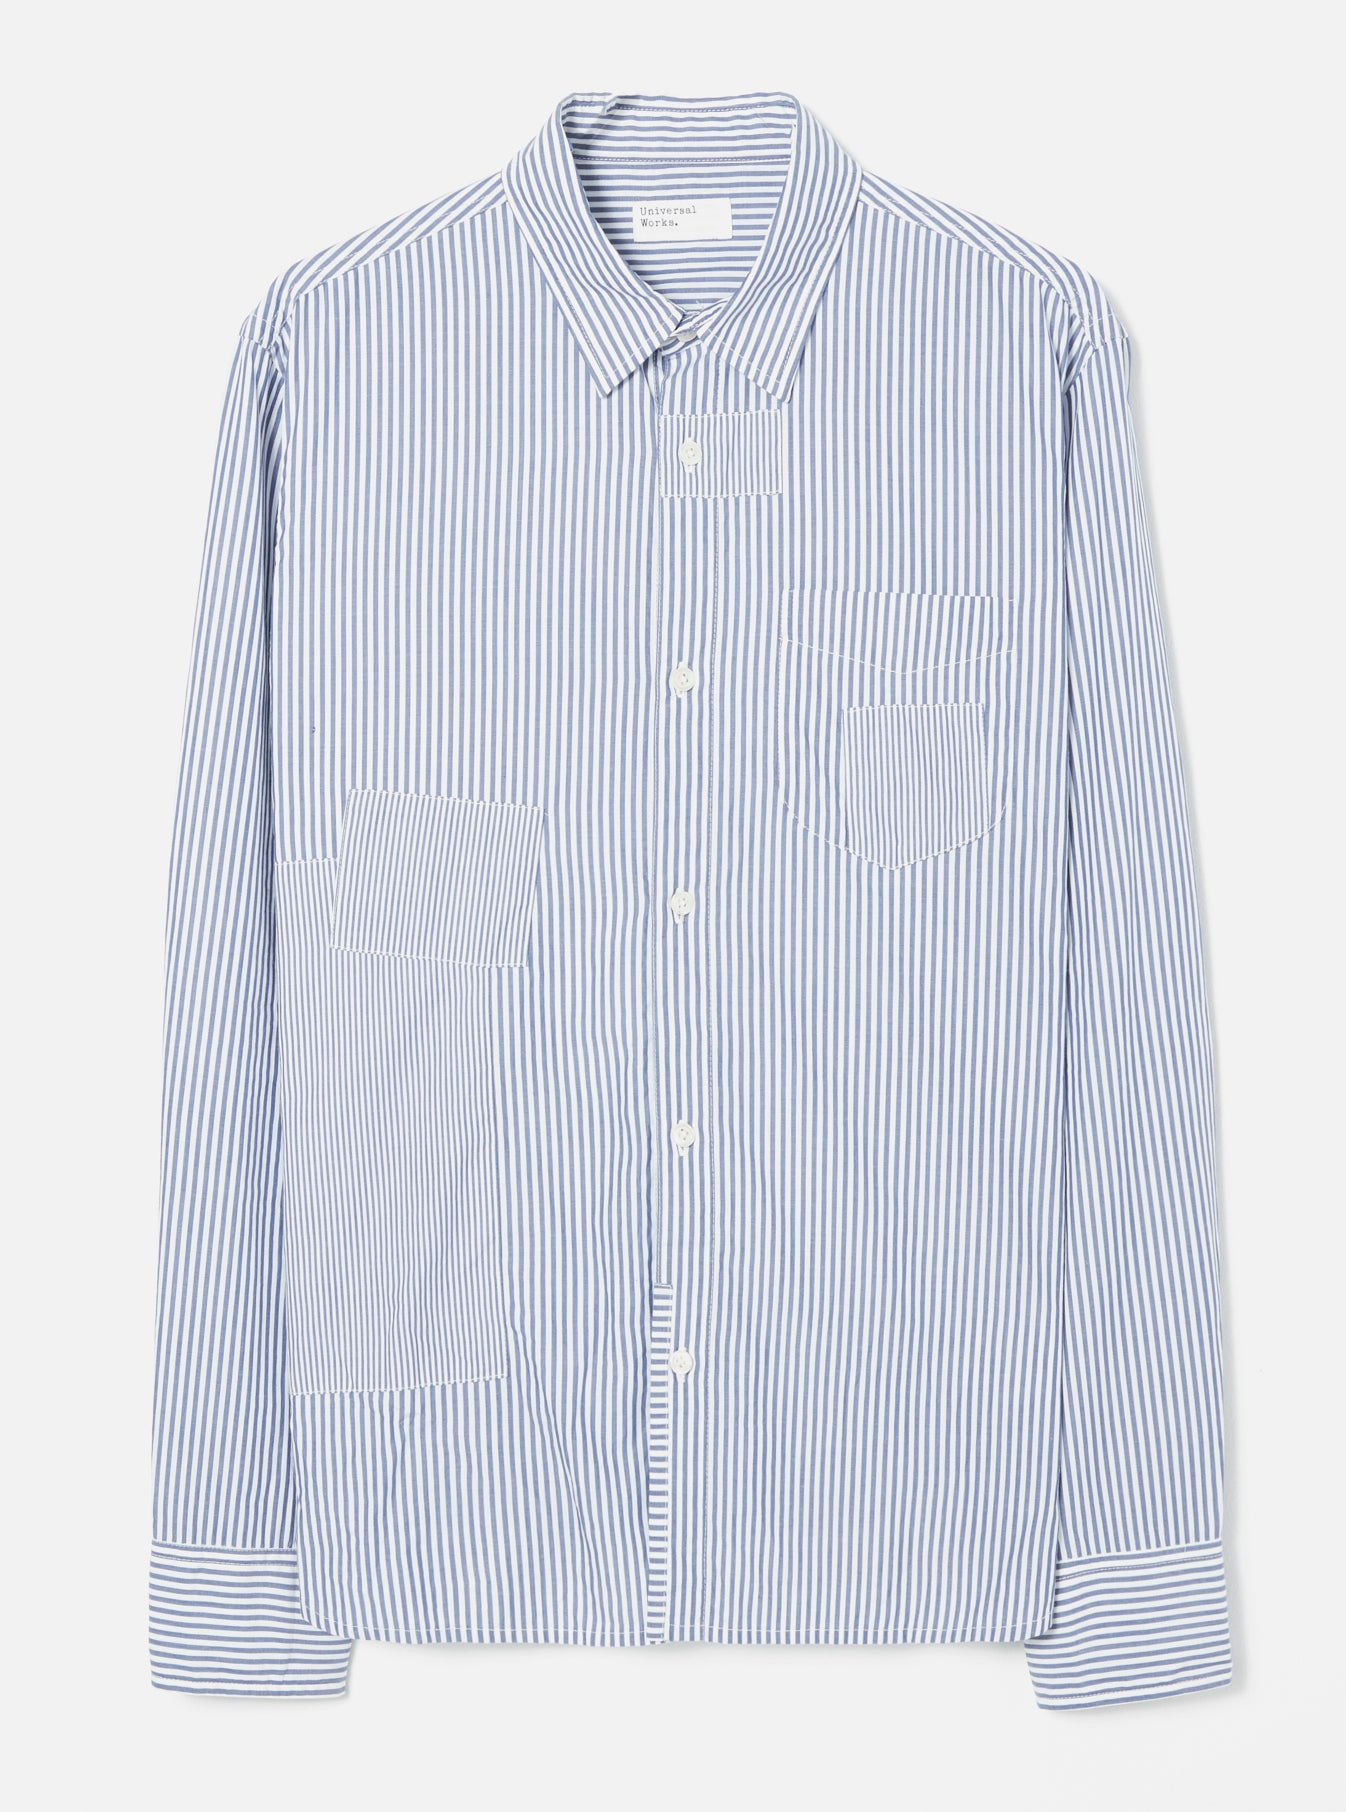 Universal Works Patch Shirt in Navy Classic Stripes